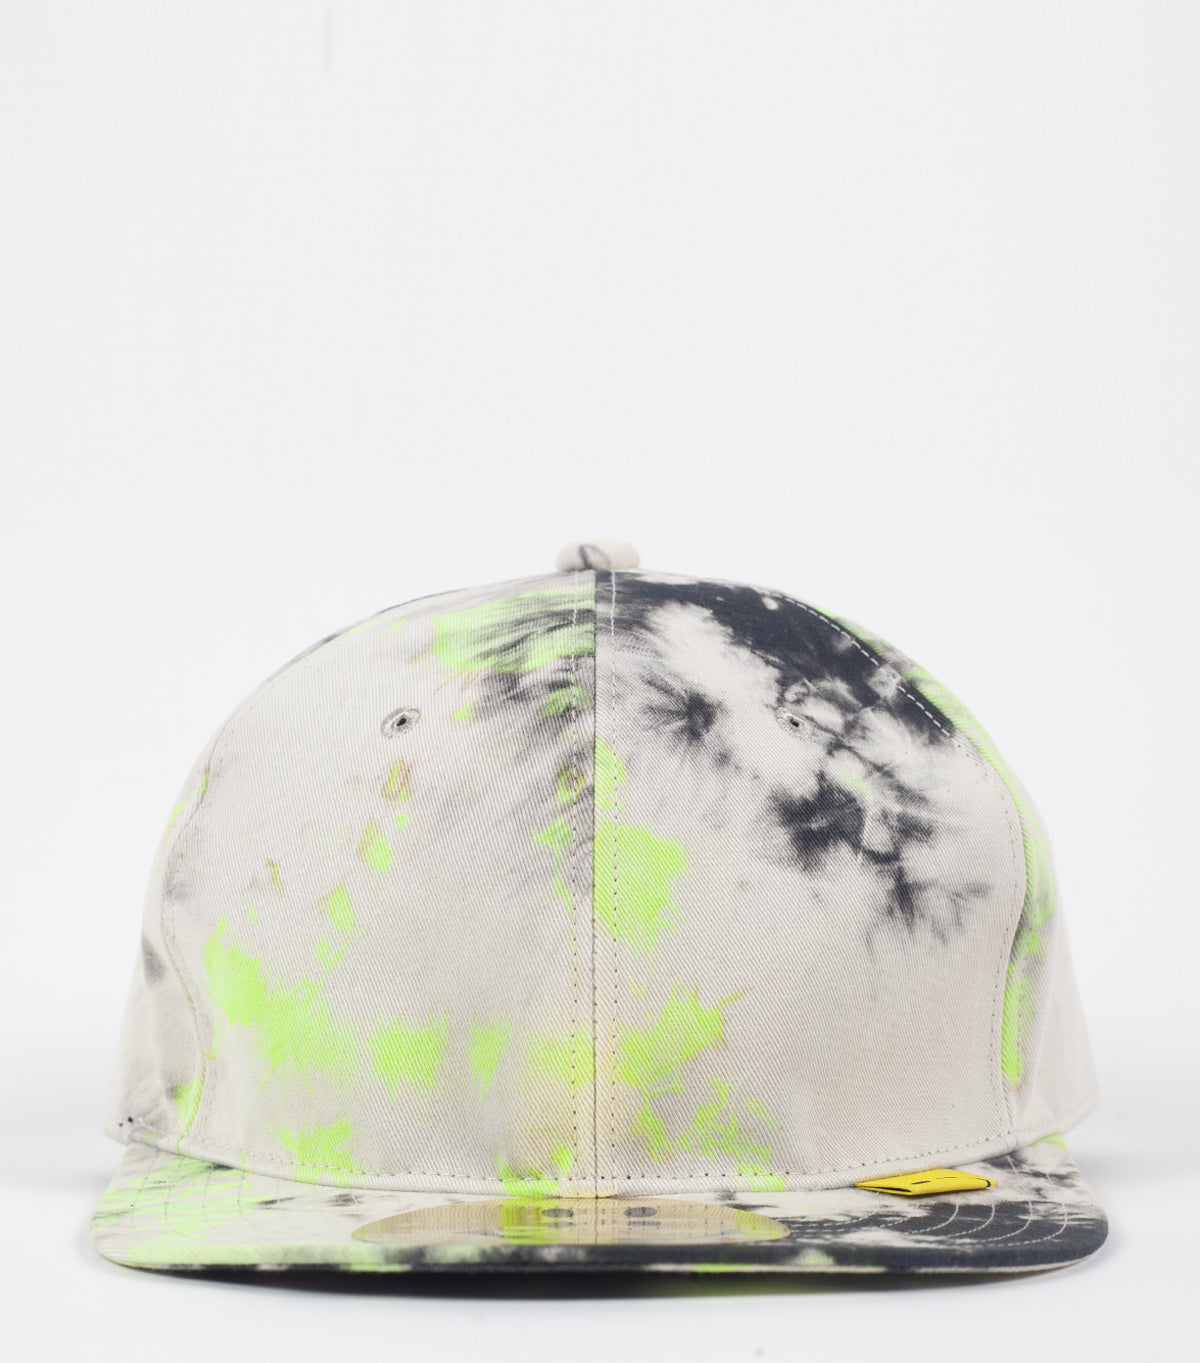 KAPITAL KOUNTRY BASEBALL CAP ASHBURY DYED BLACK YELLOW